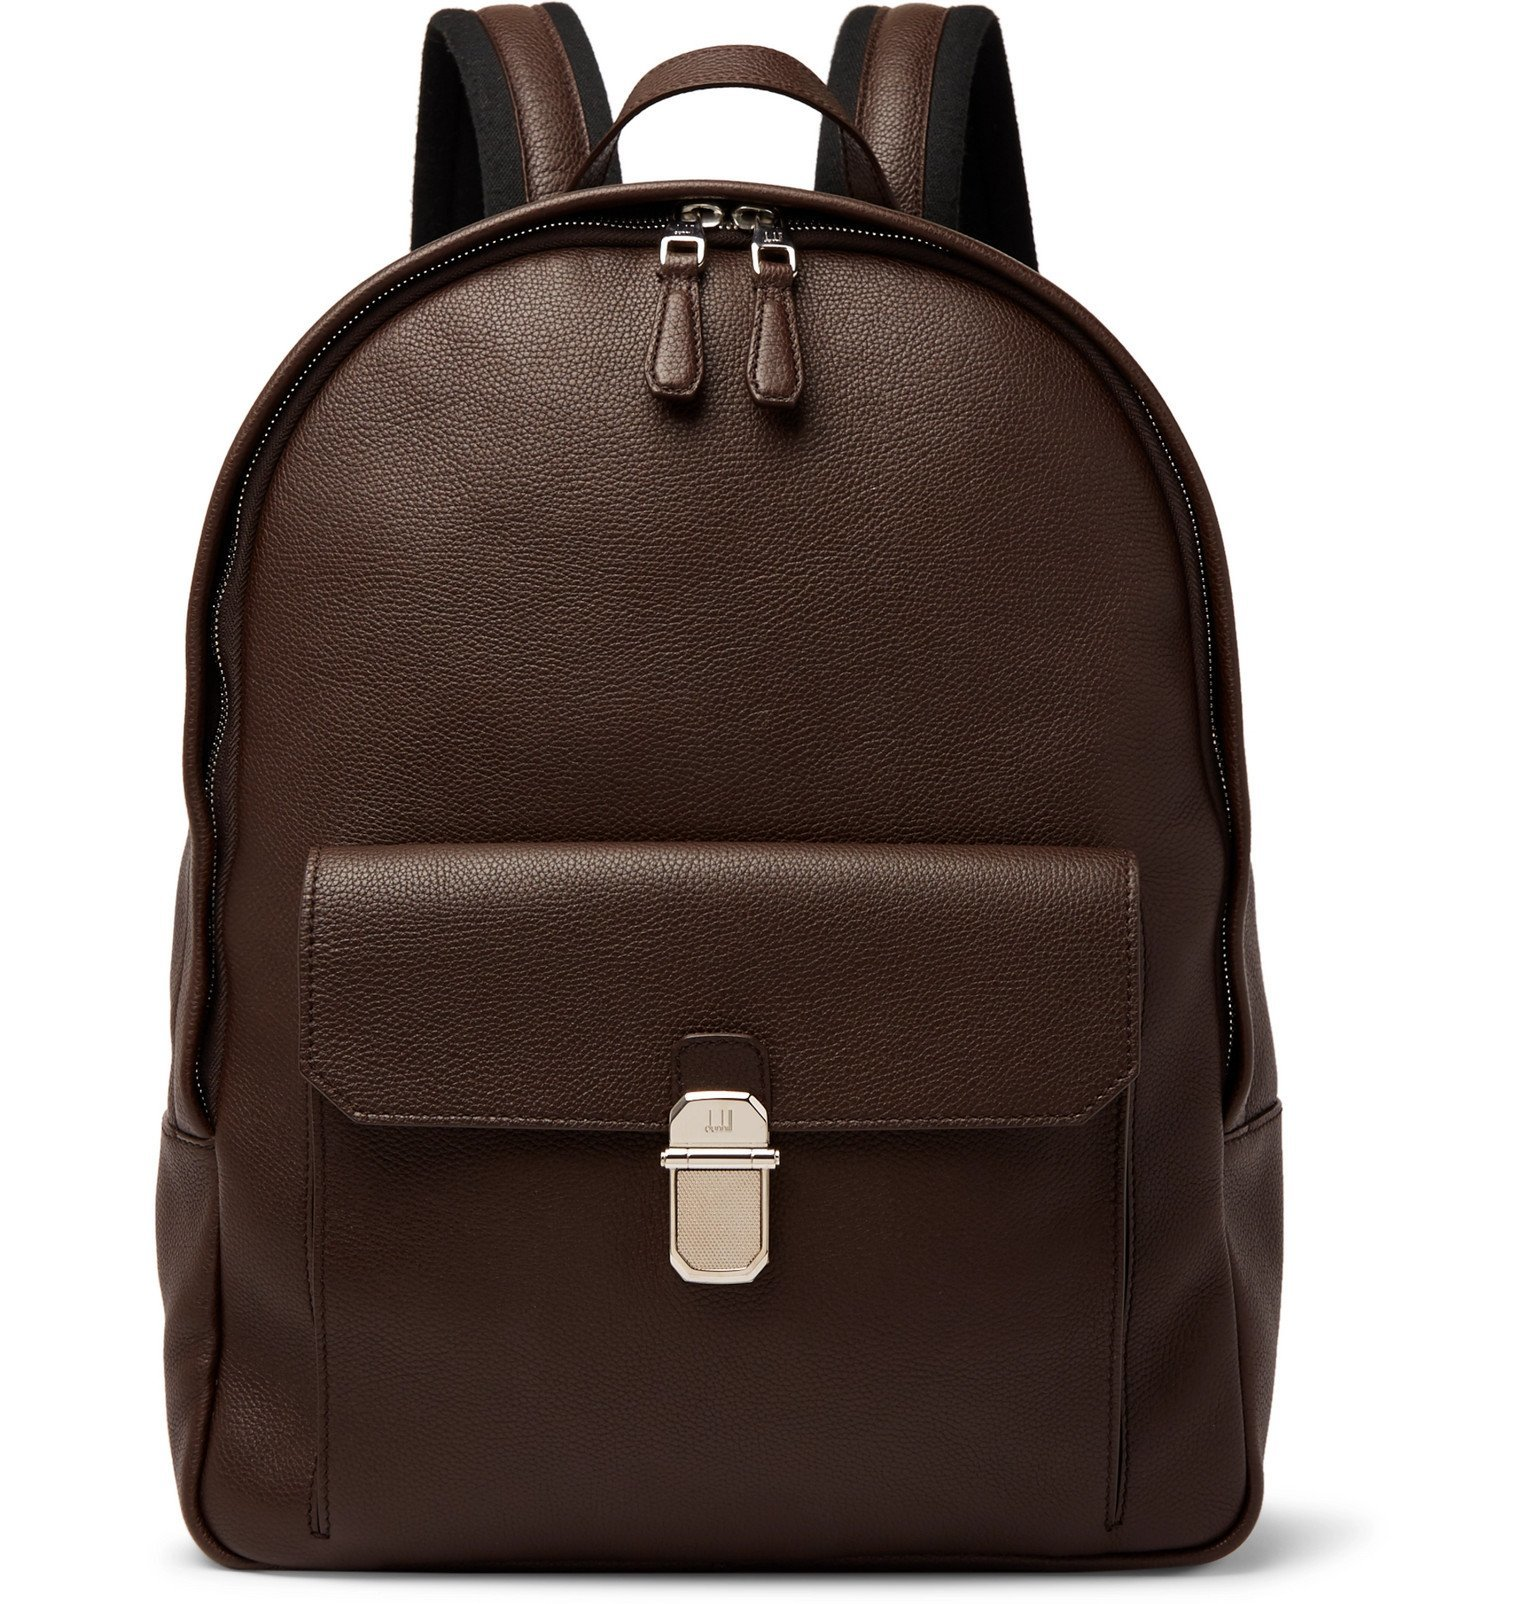 Dunhill - Belgrave Full-Grain Leather Backpack - Brown